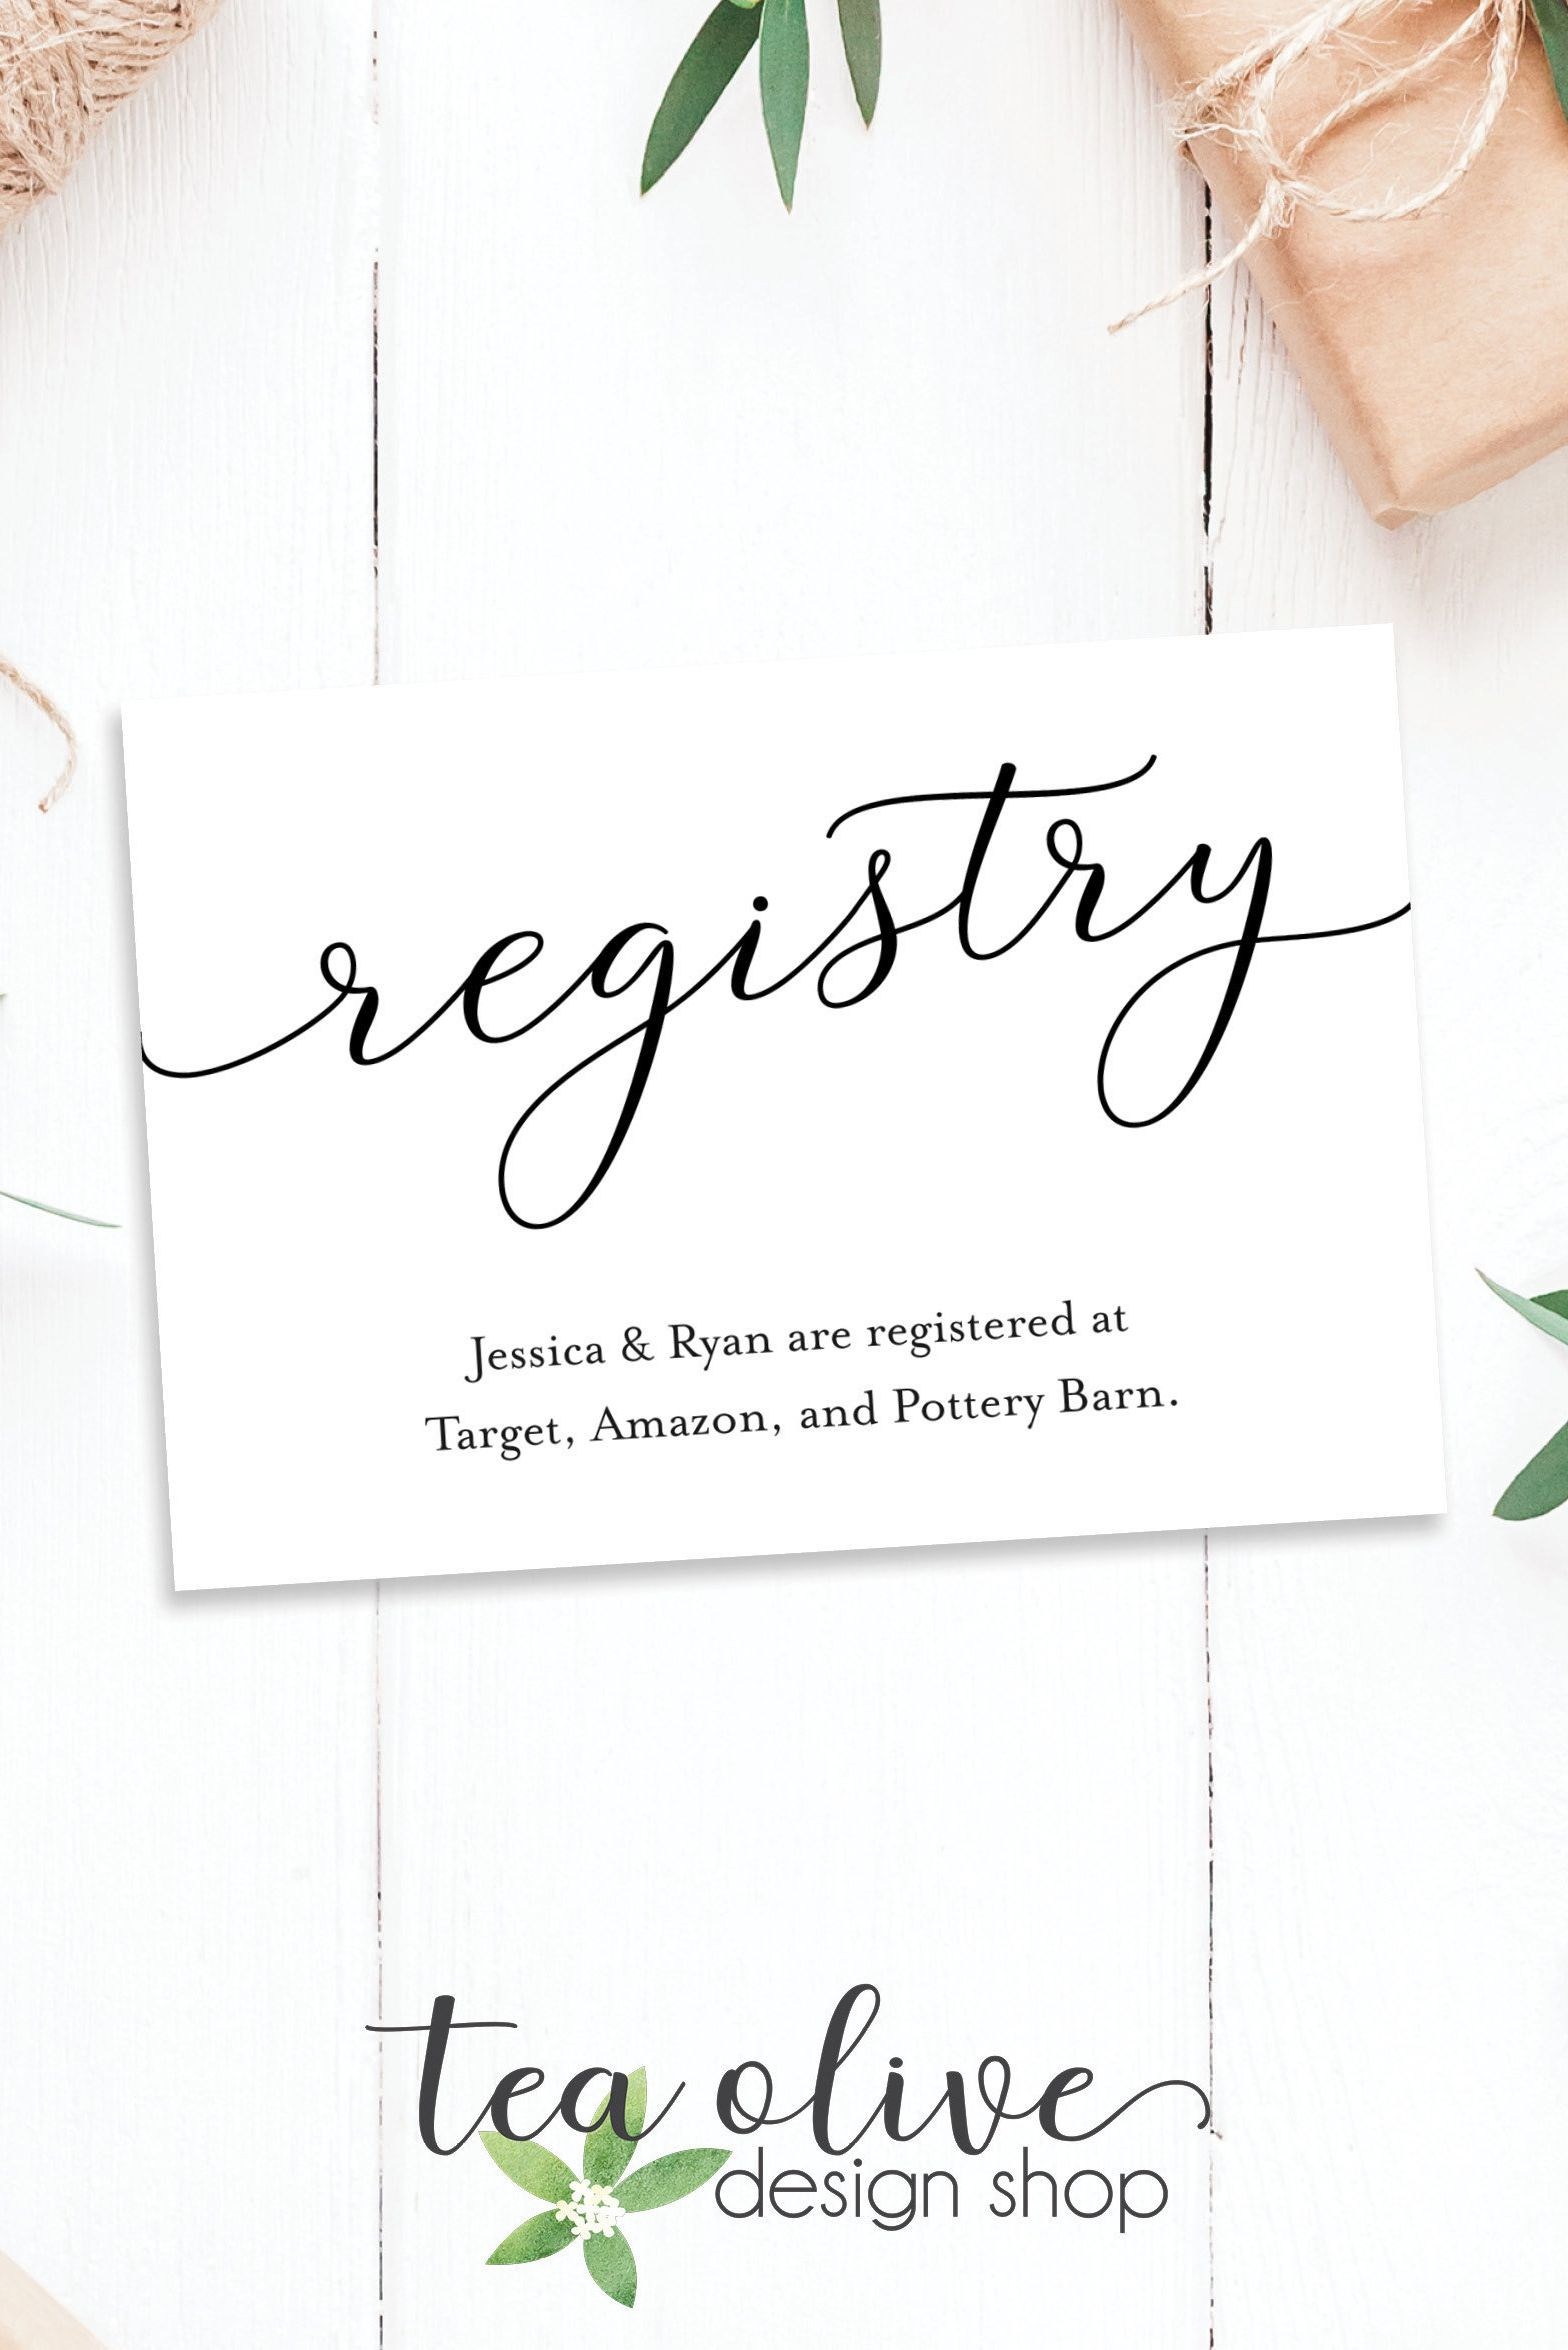 Registry Card Insert Baby Shower Gift Registry Card Etsy In 2021 Registry Cards Baby Shower Gift Registry Wedding Registry Cards